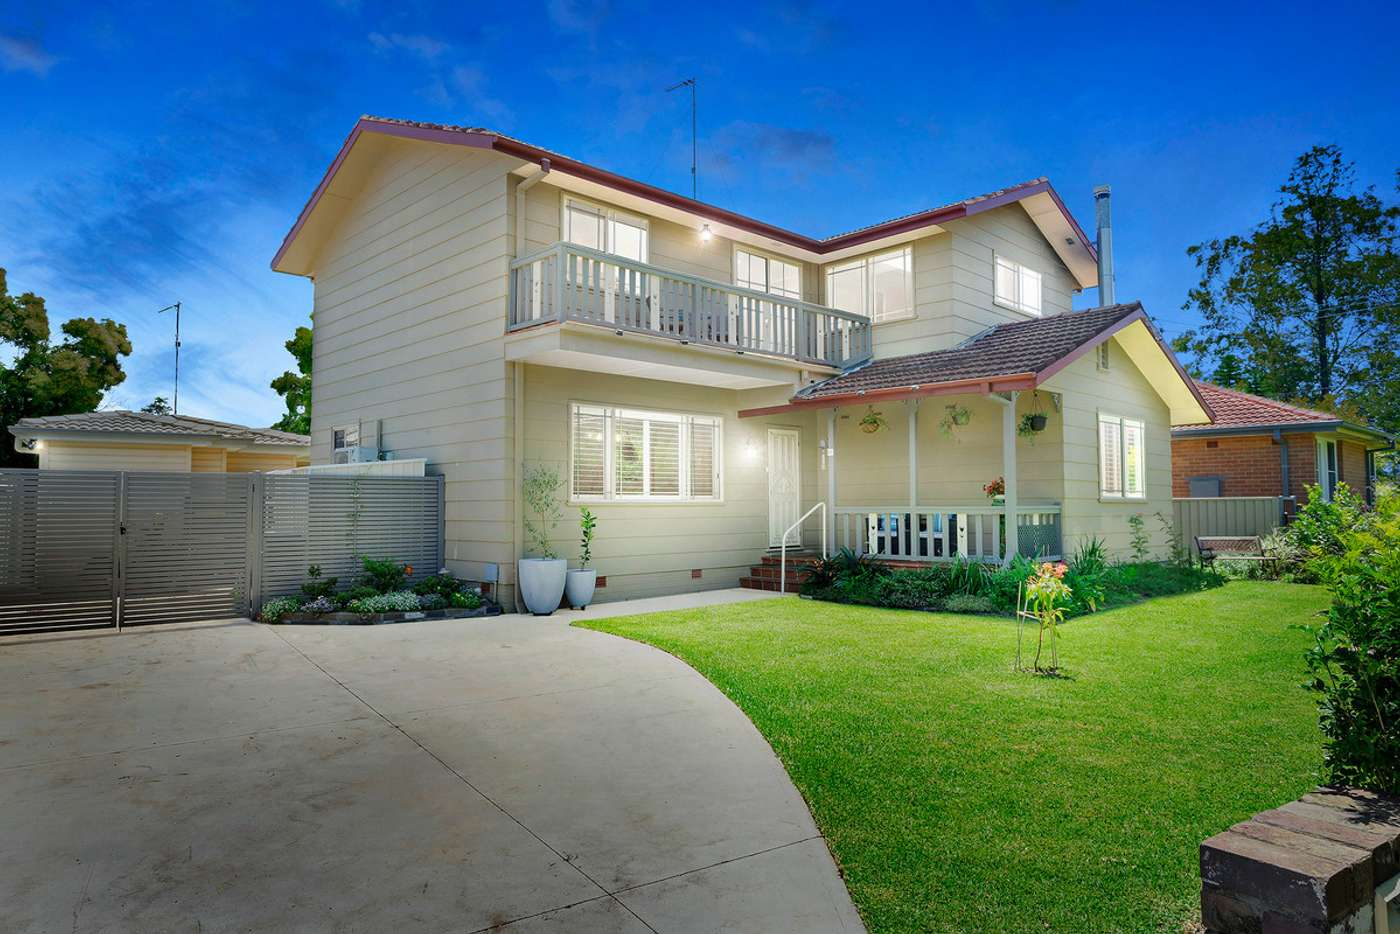 Main view of Homely house listing, 21 Laurence Street, Hobartville NSW 2753